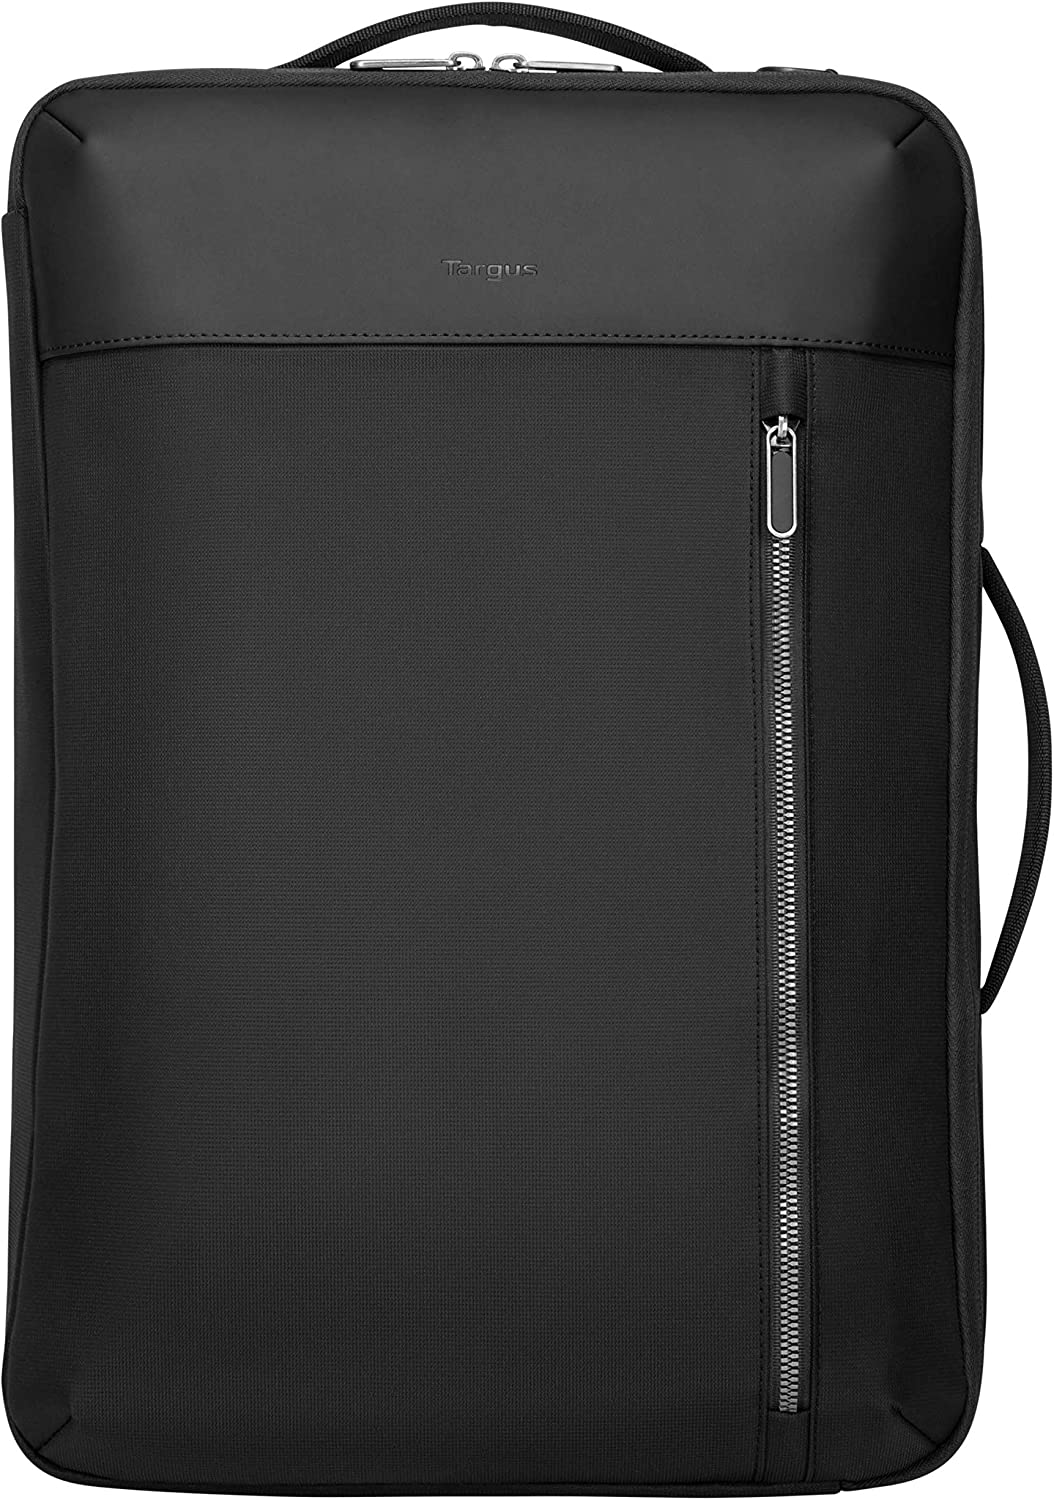 Targus Urban Convertible Backpack Designed for Business Traveler and School fit up to 15.6-Inch Laptop/Notebook, Black (TBB595GL)